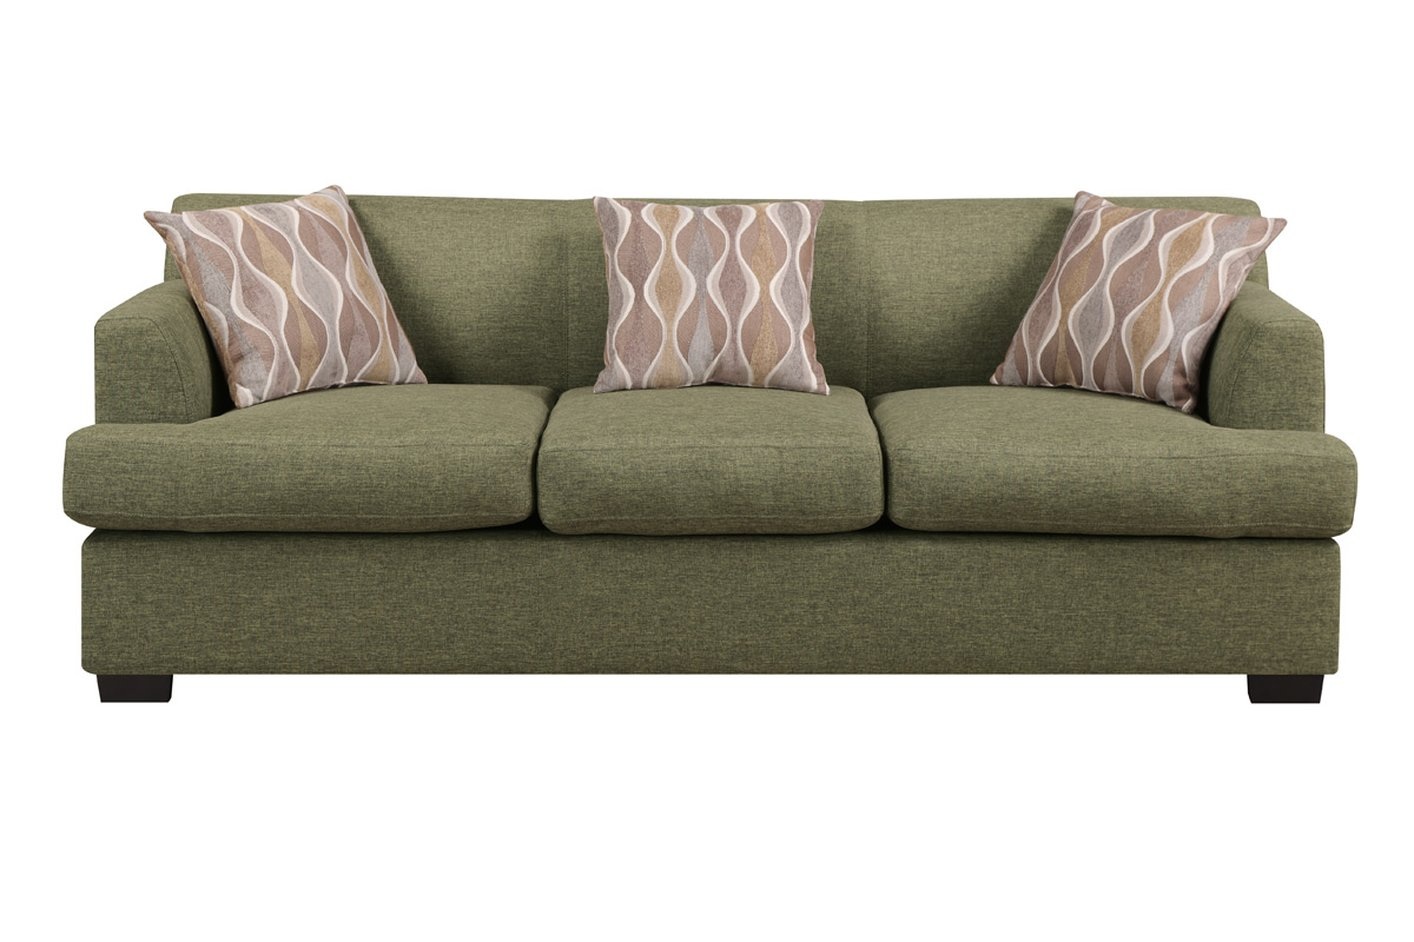 Poundex Montreal Iv F7978 Green Fabric Sofa Steal A Sofa: fabric sofas and loveseats